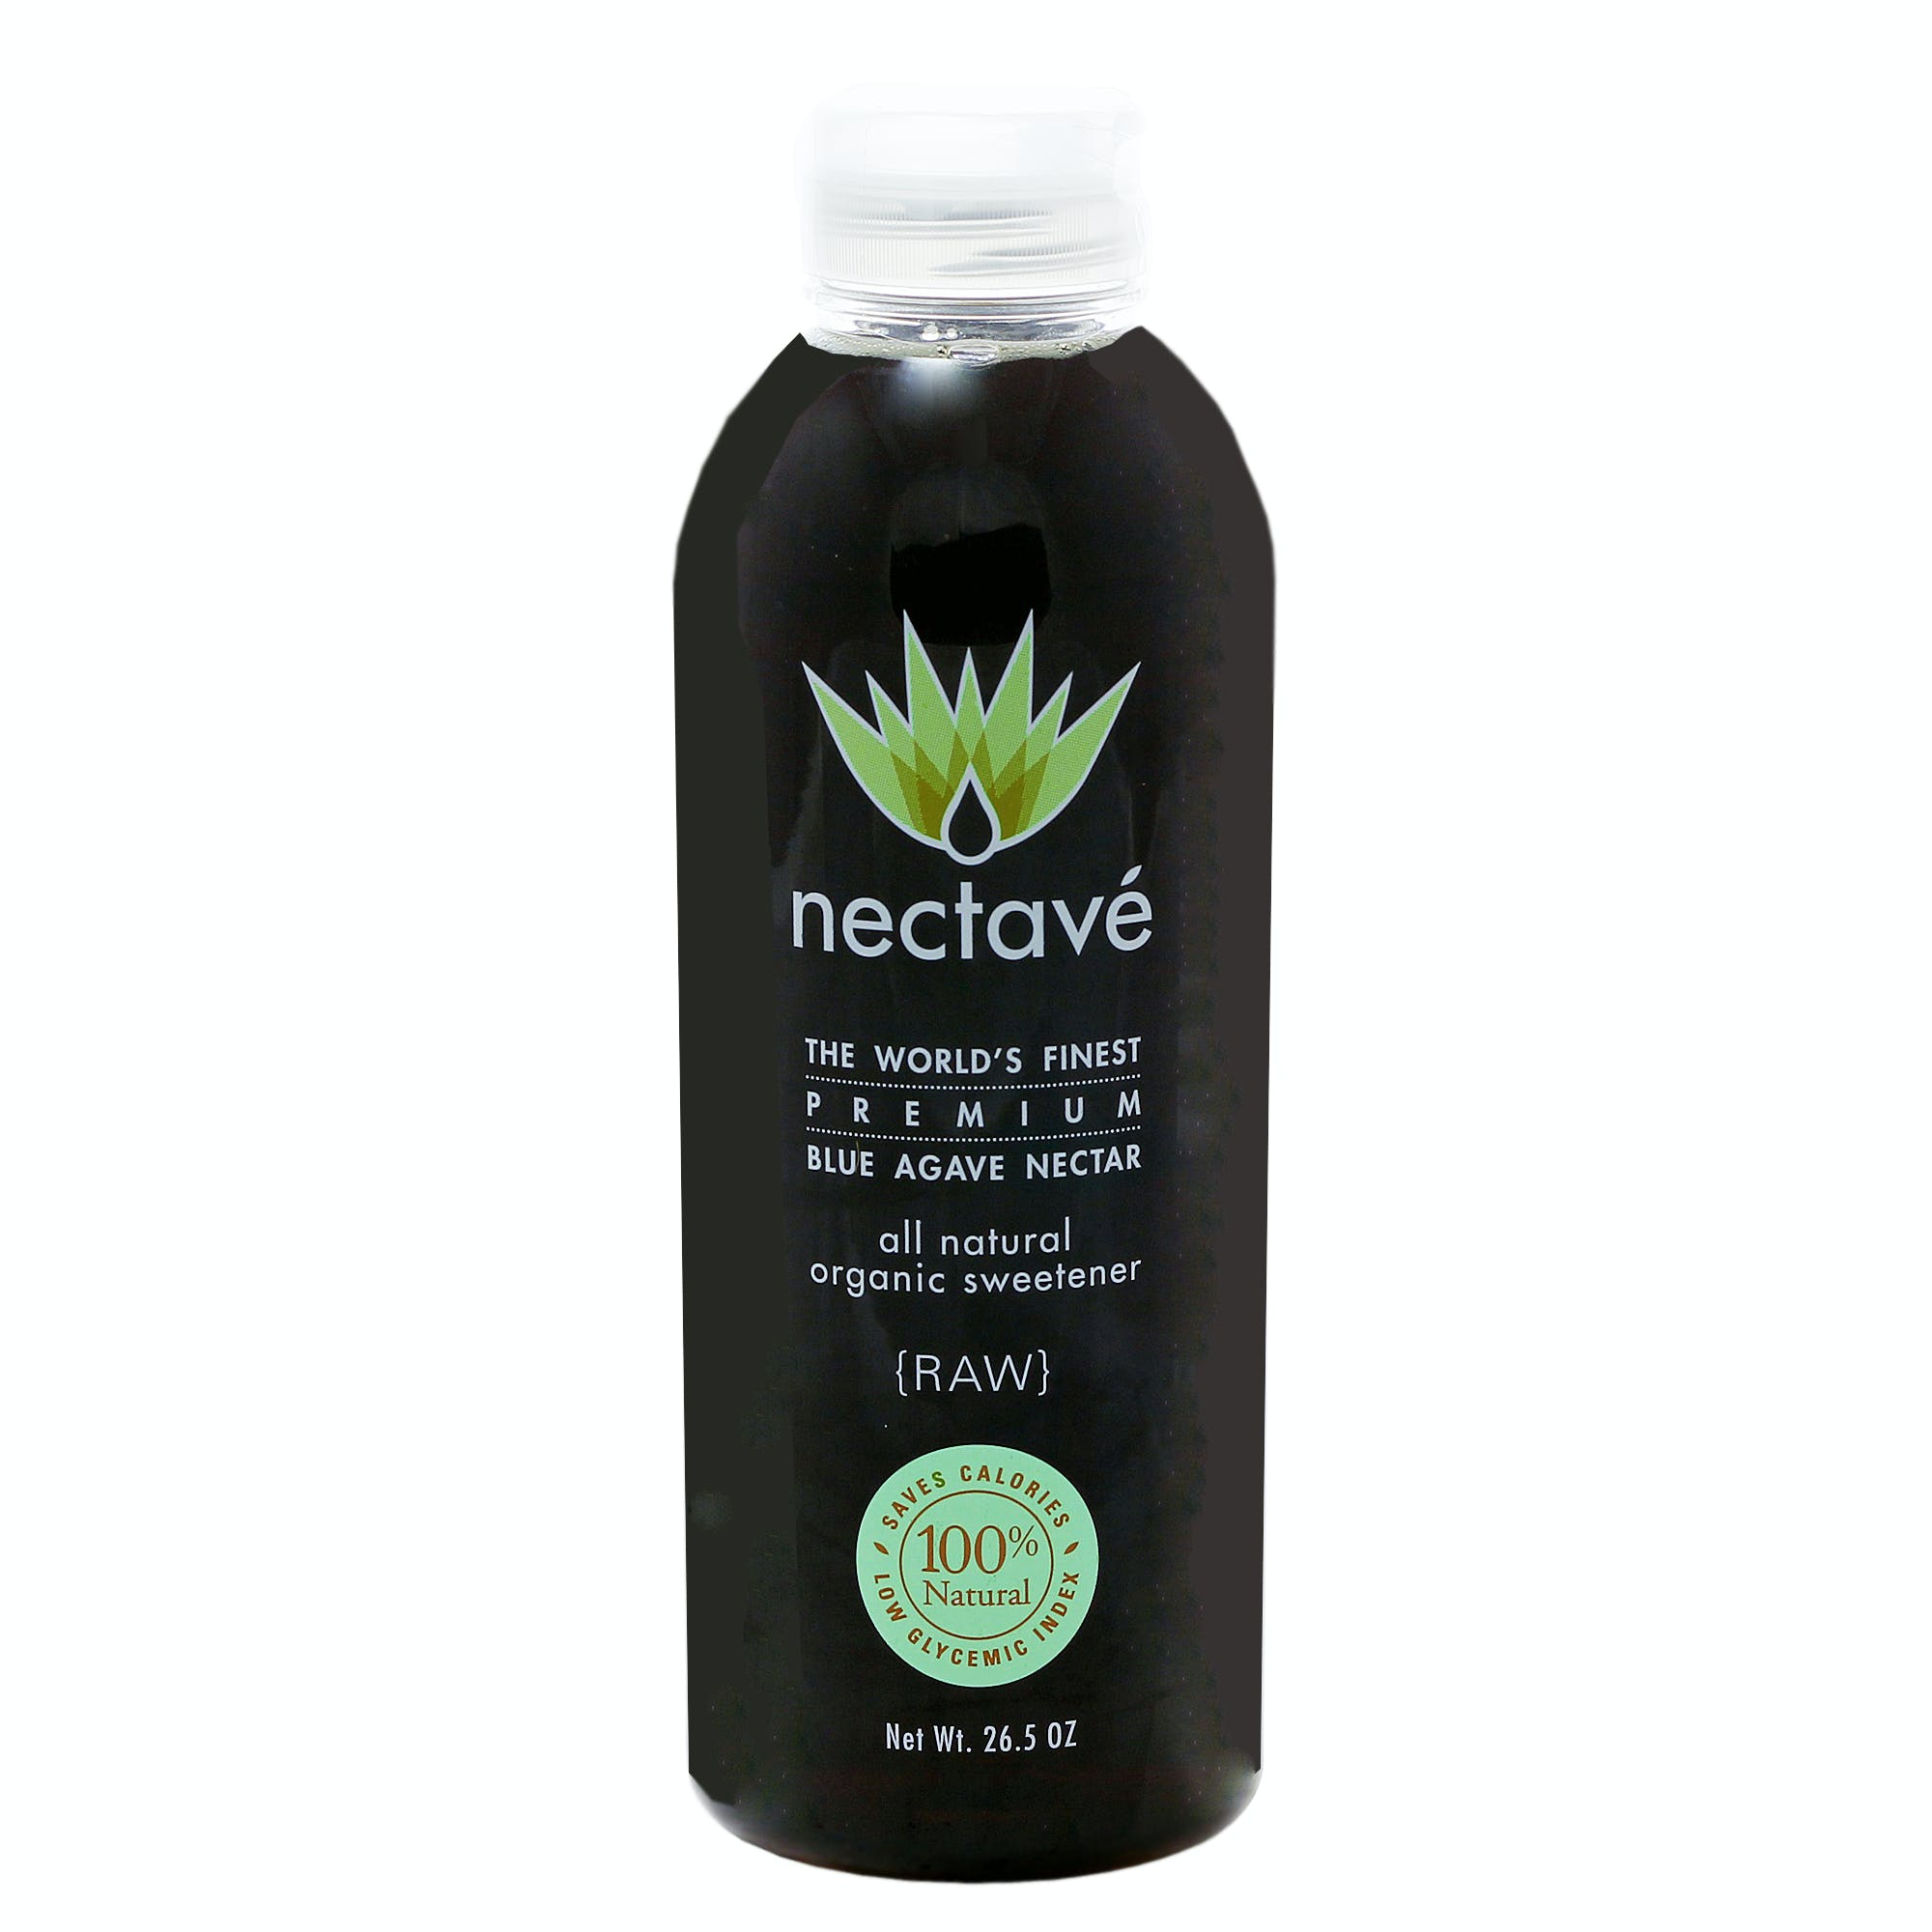 Dark Raw Organic Agave Nectar Boston Round Agave sweetener sold by M5 Corporation